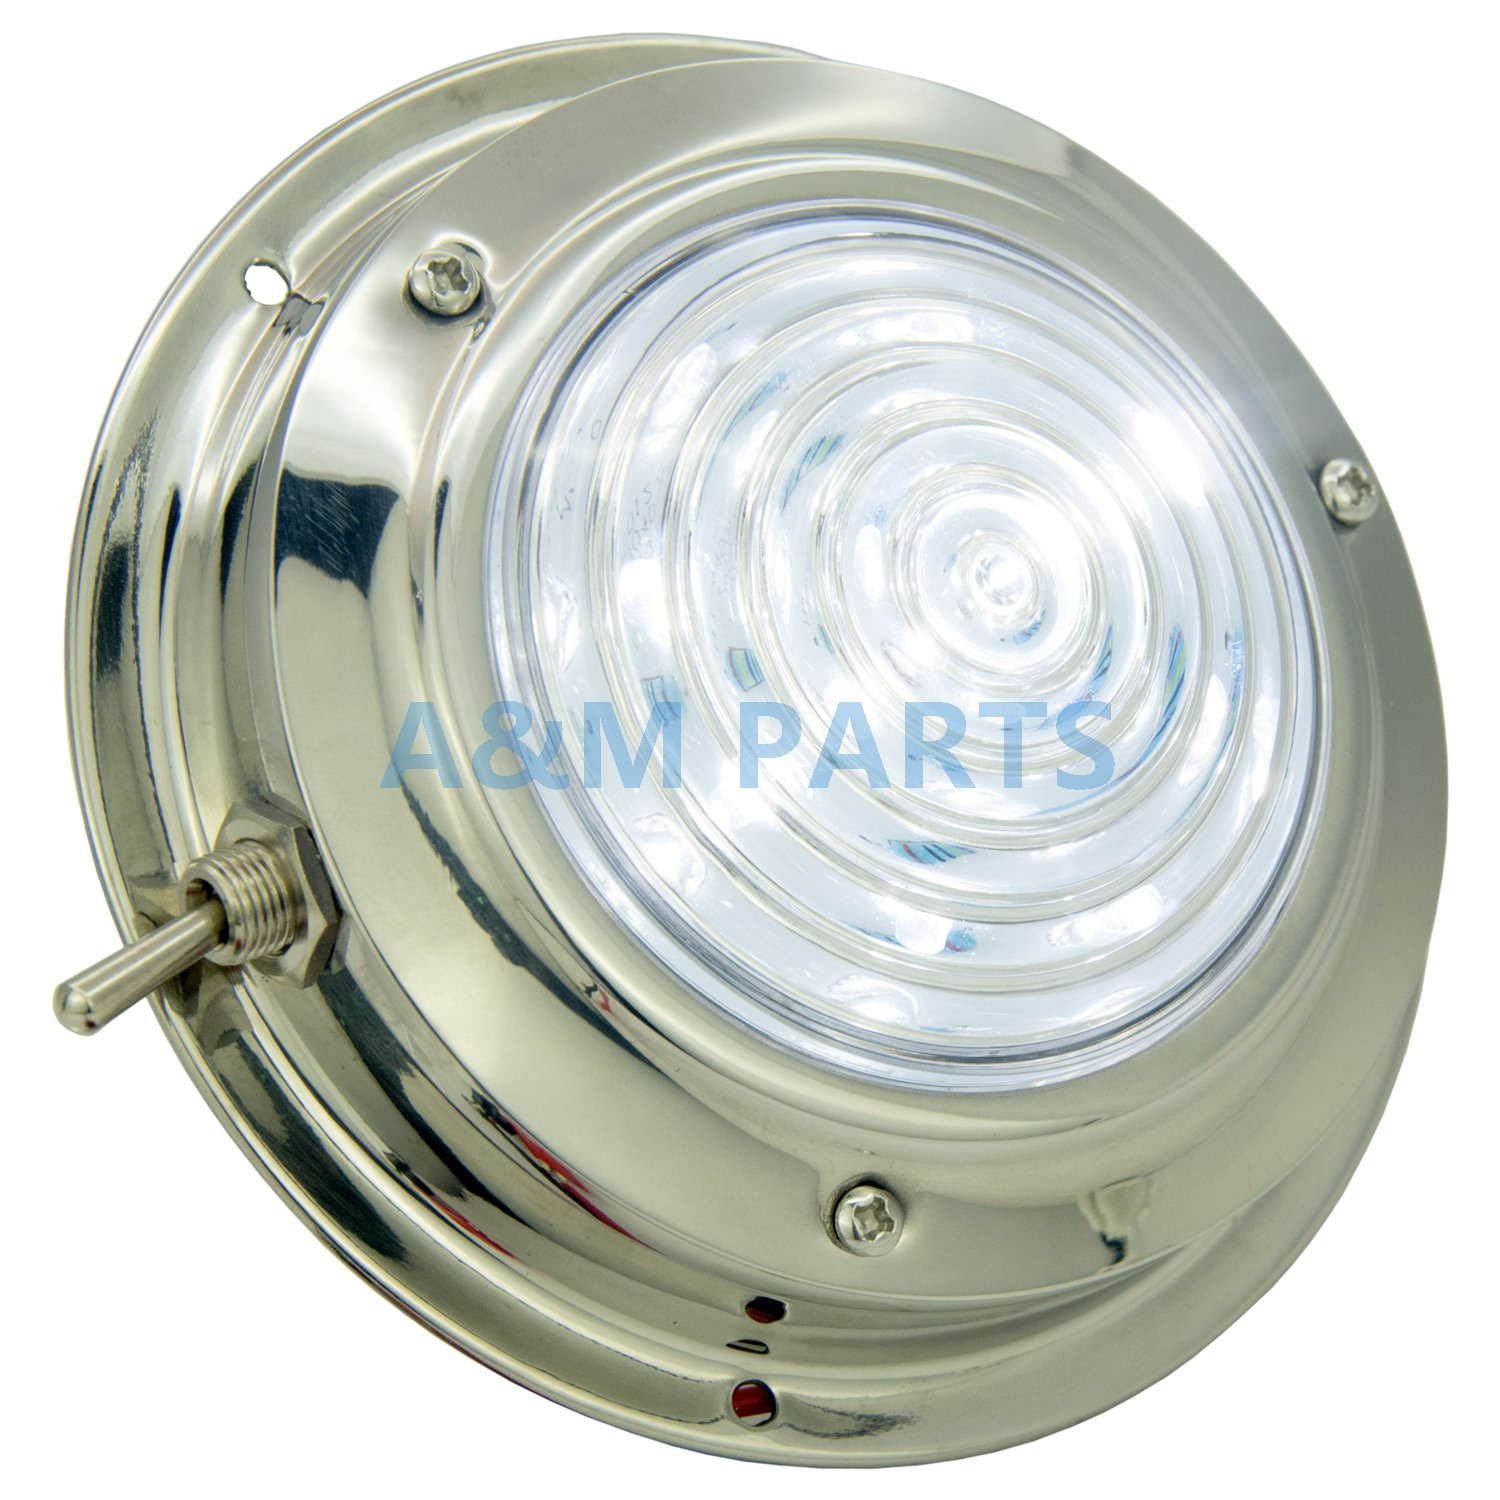 LED Dome Light With Switch 12V Boat Caravan Marine RV Cabin Interior Decorative Lamp Stainless Steel Housing 4.5 inch Cool White decorative led cabin light panel